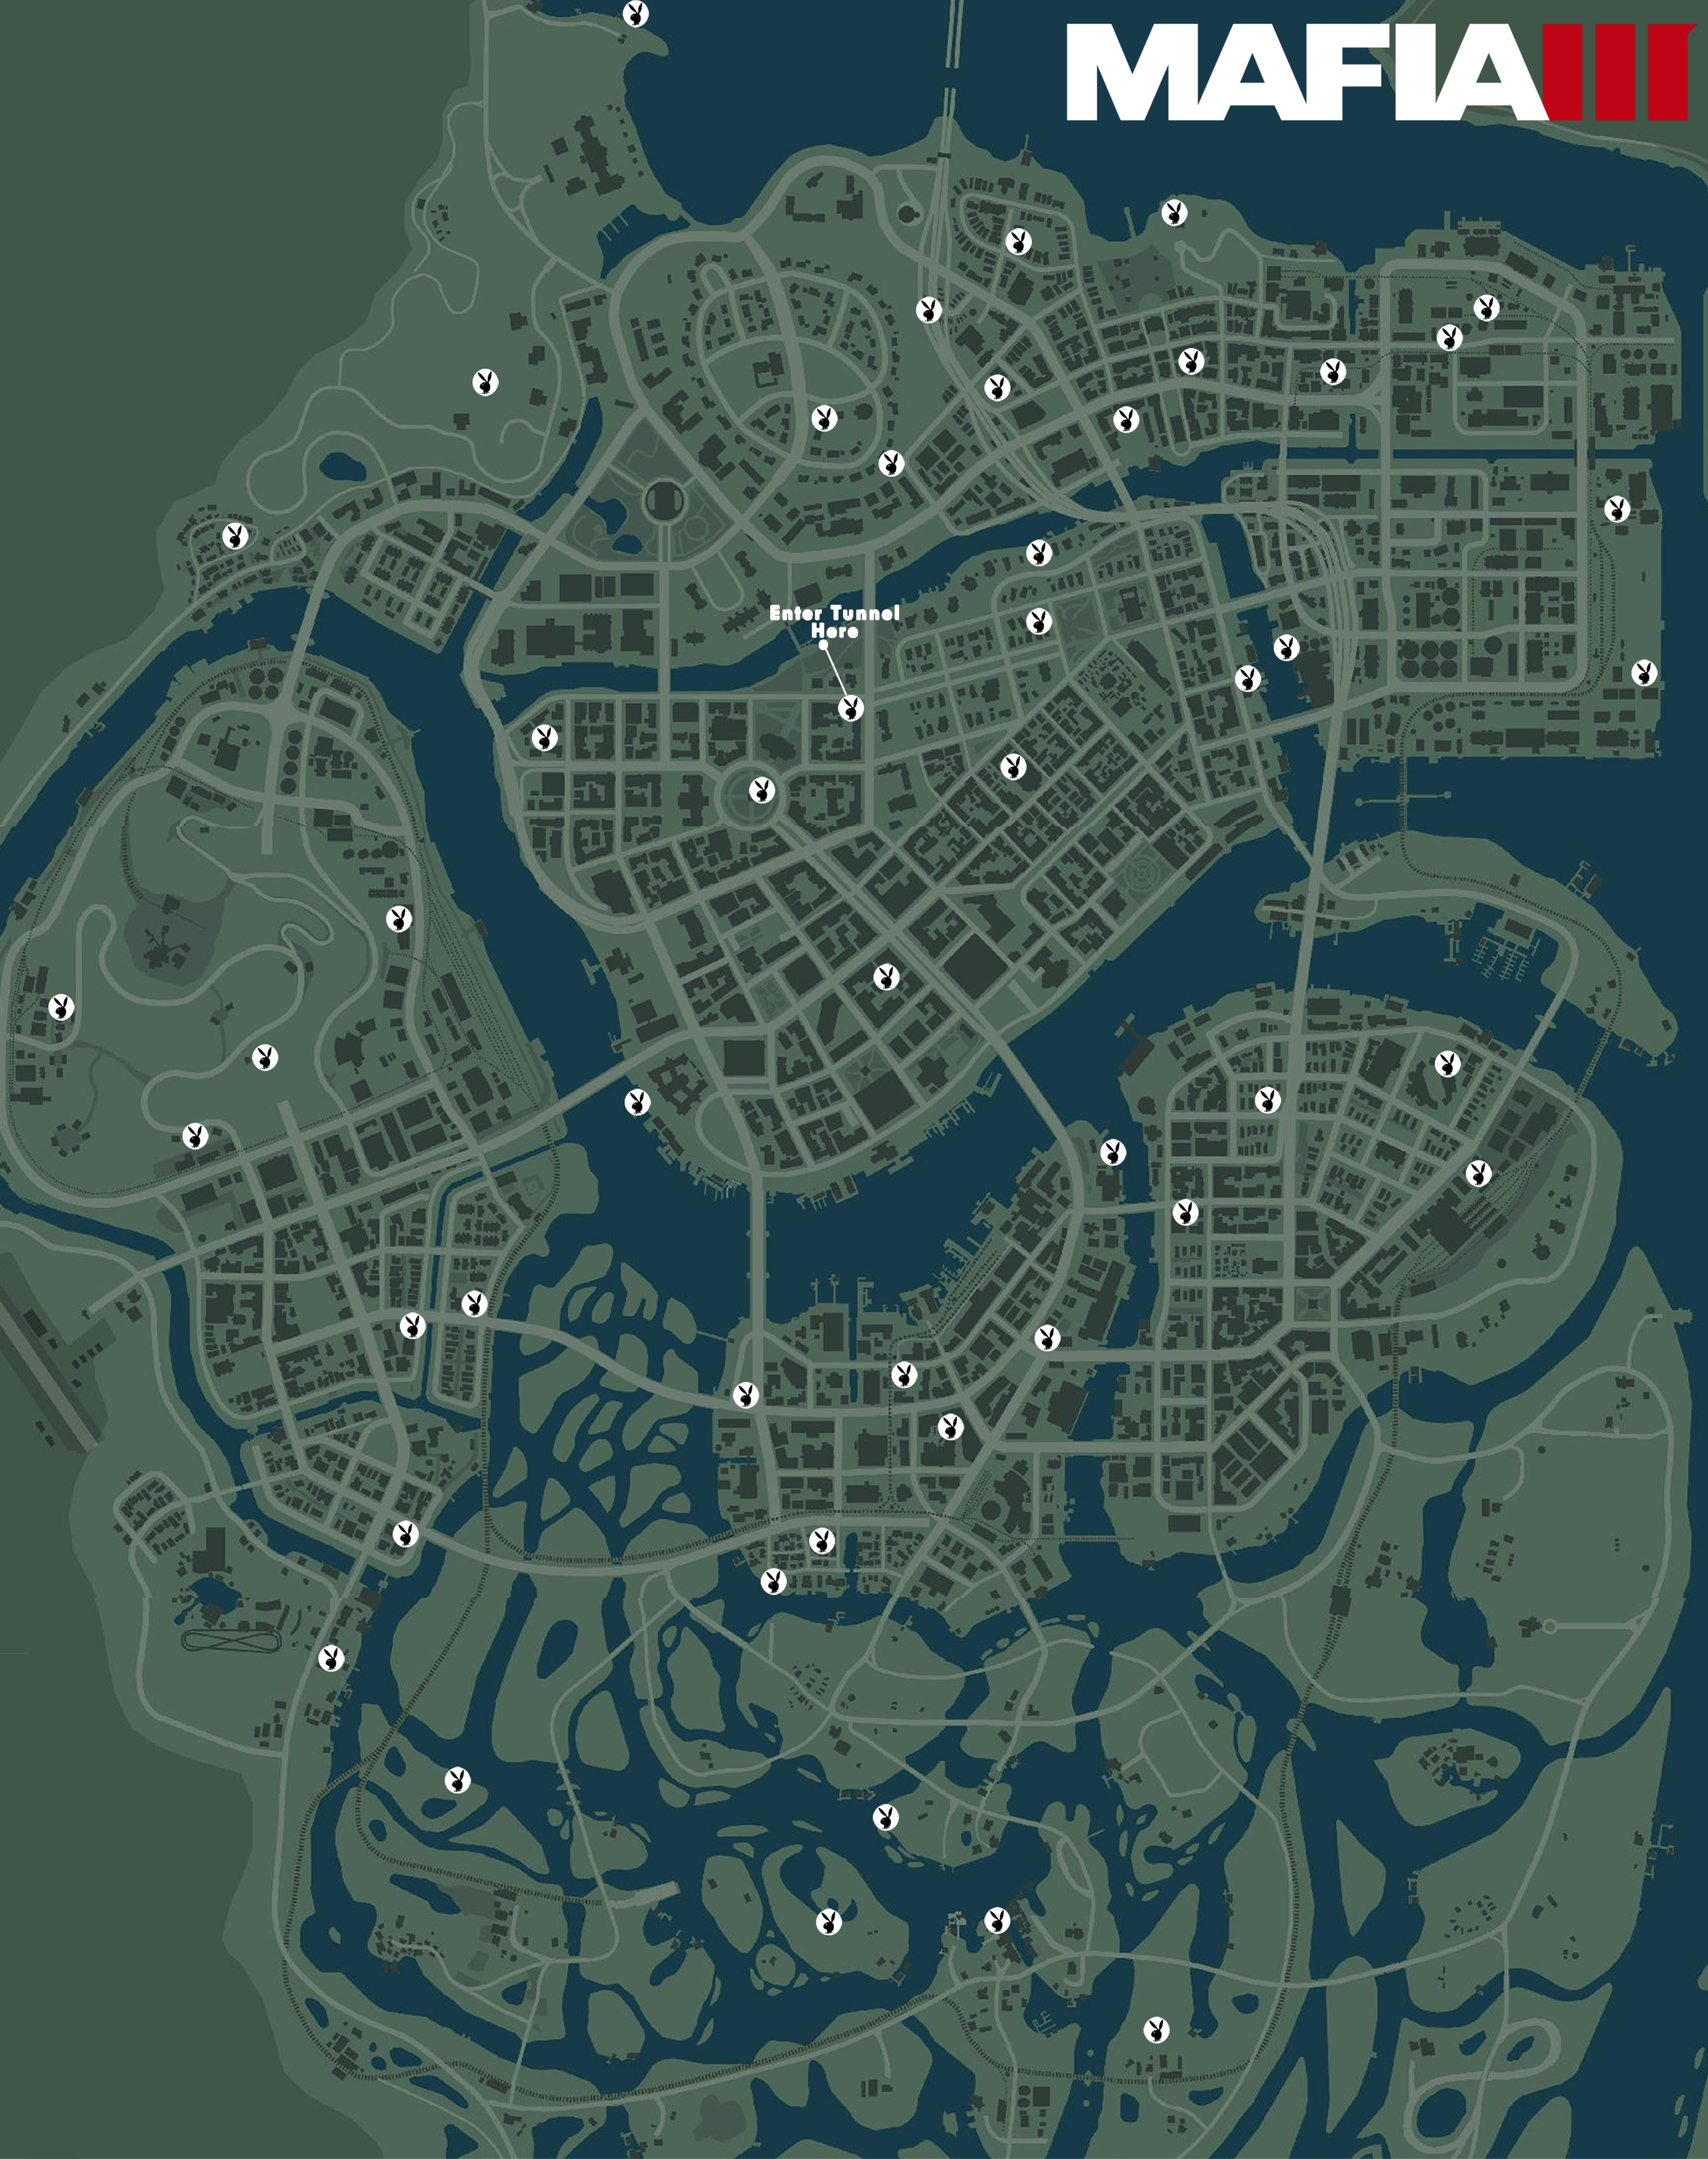 Mafia 3 map shows the location of every playboy magazine collectible mafia 3 playboy locations gumiabroncs Images